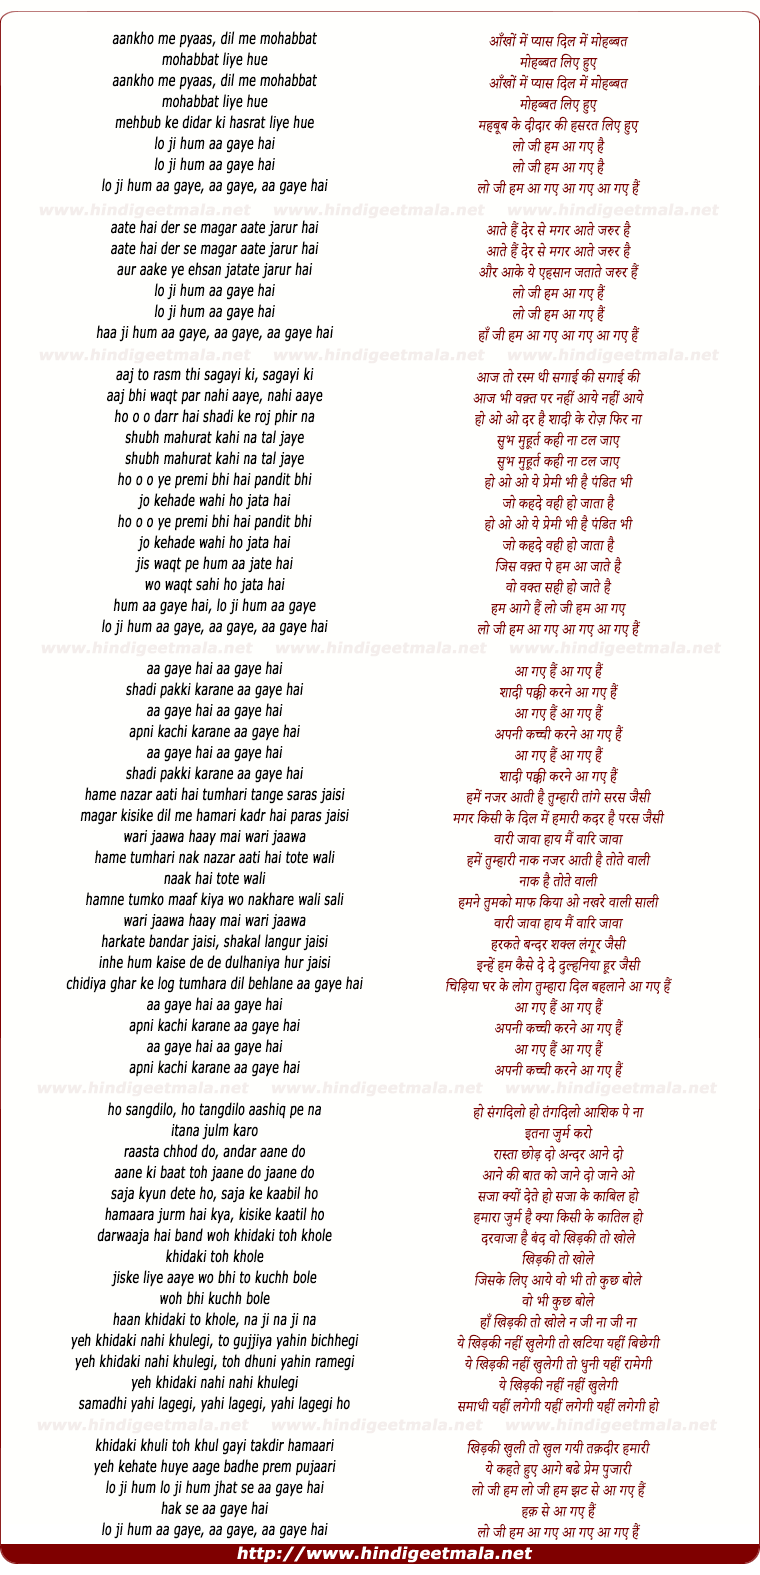 lyrics of song Lo Ji Hum Aa Gaye